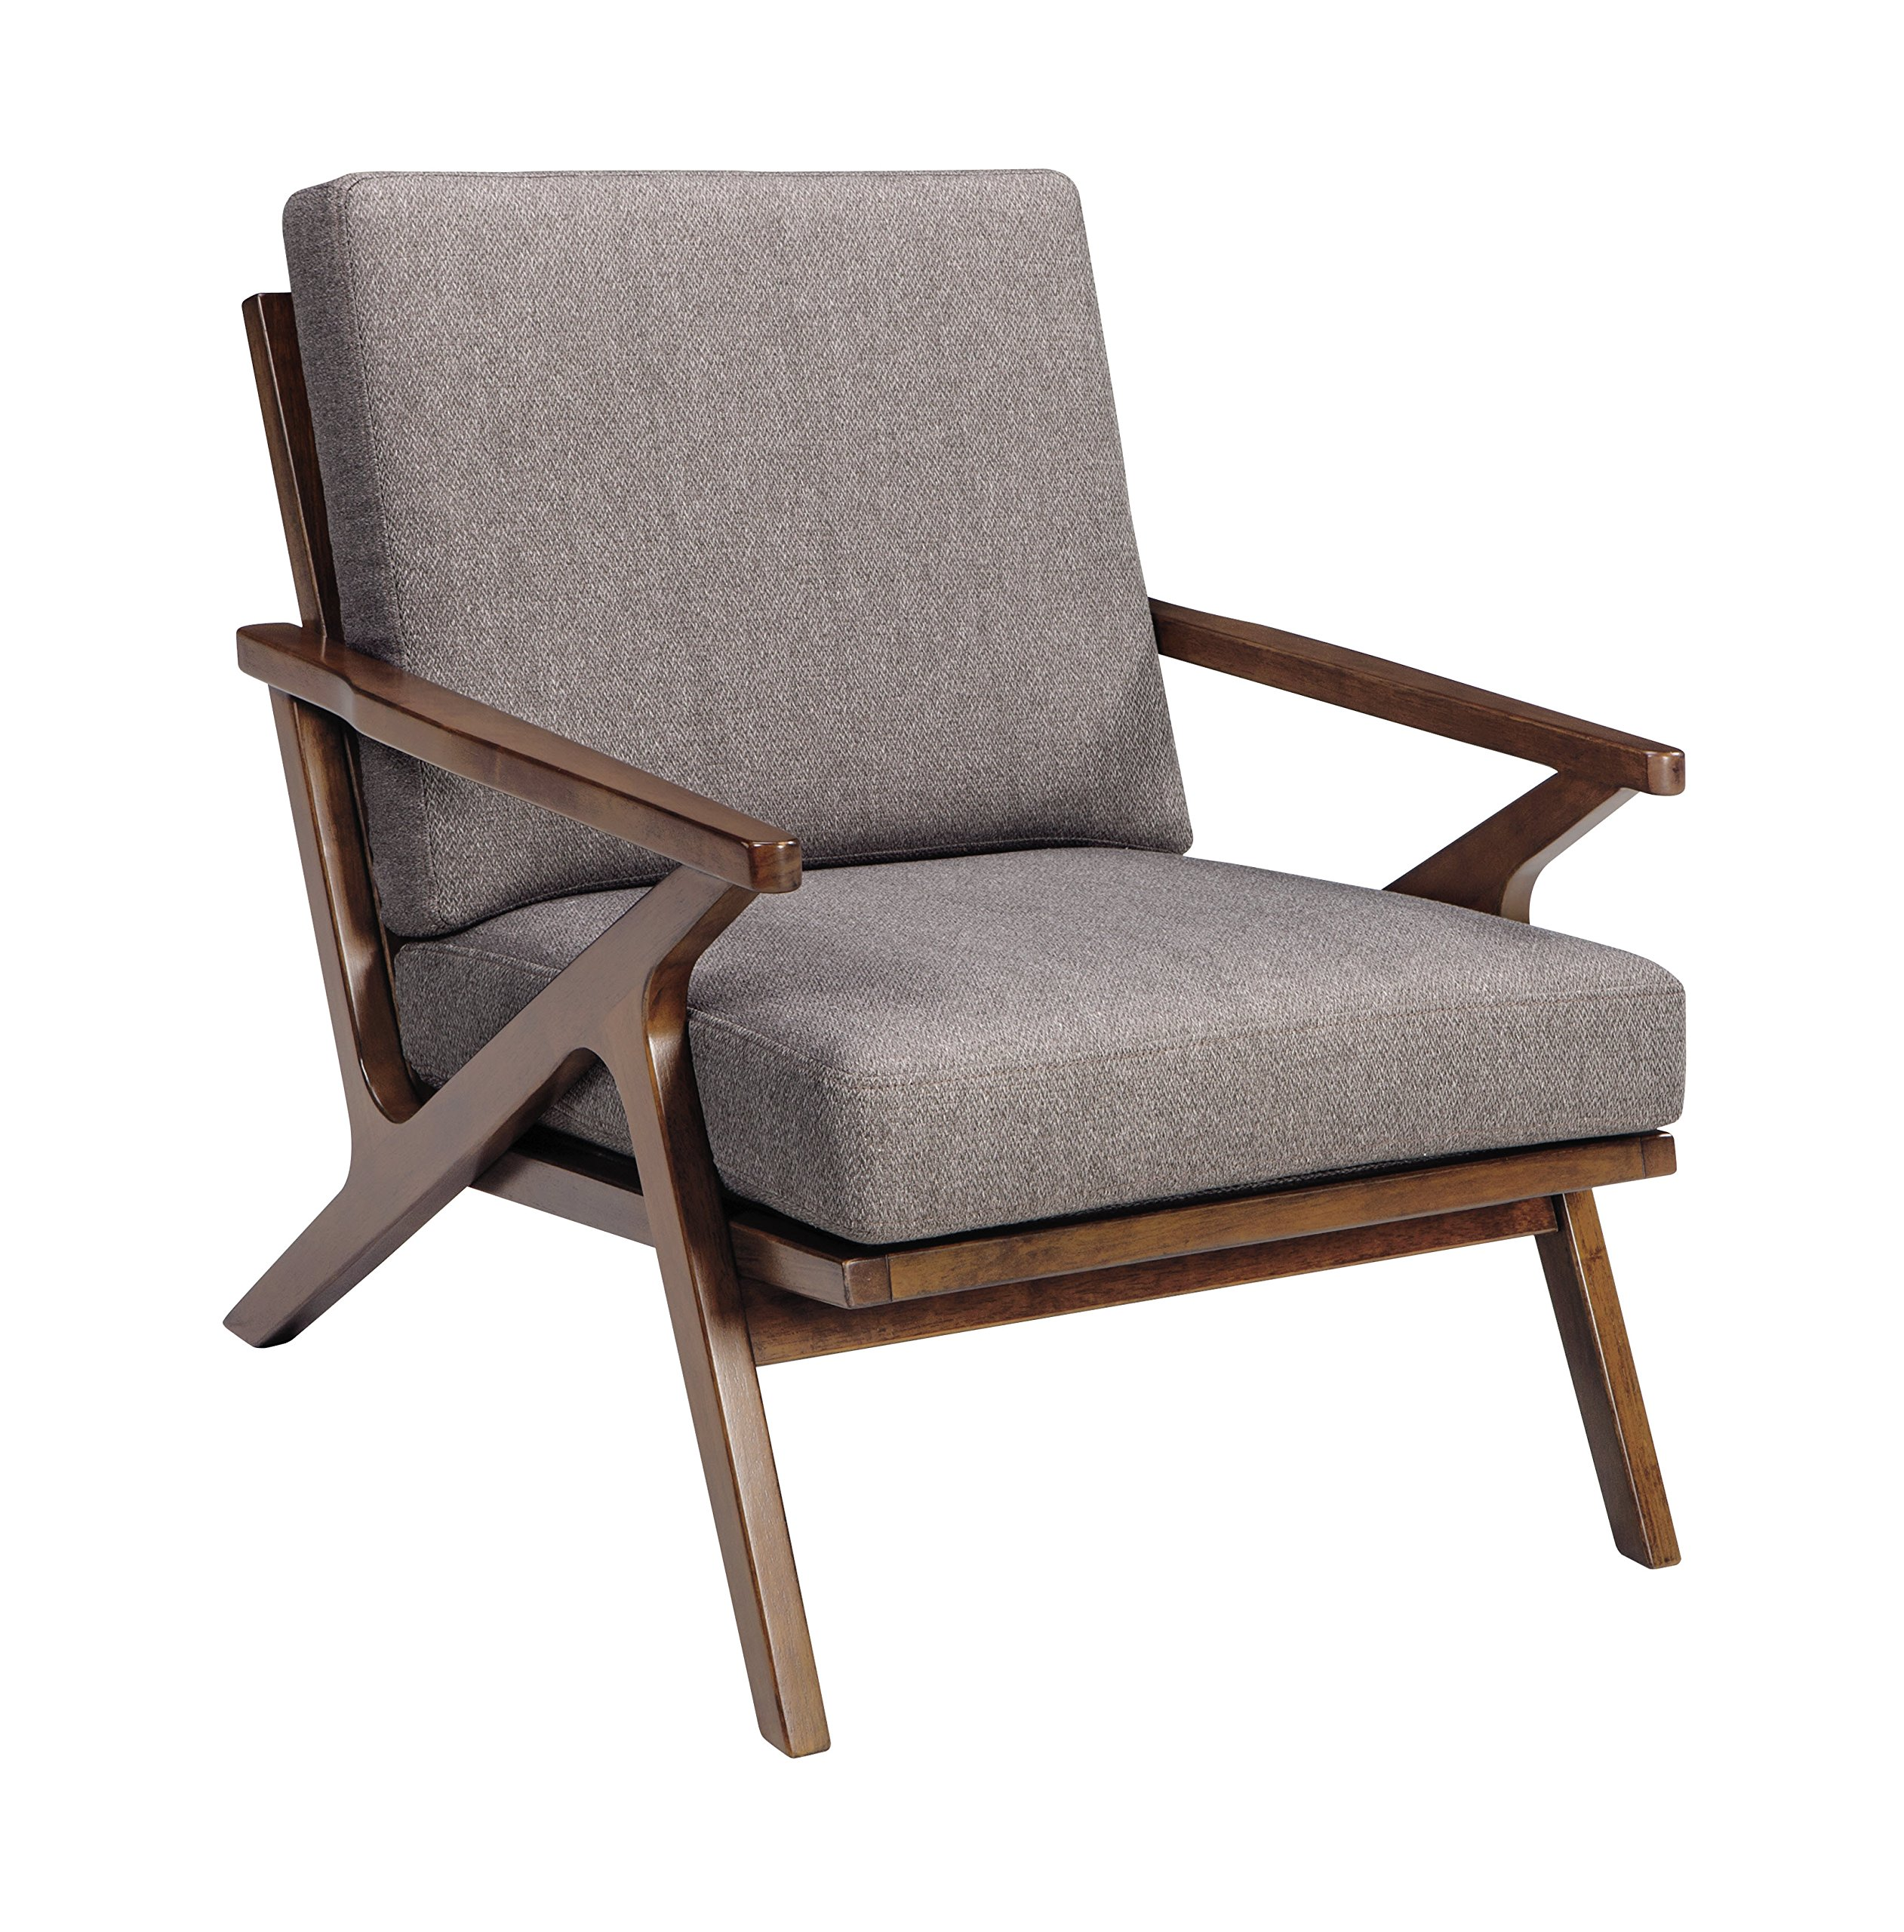 Ashley Furniture Signature Design - Wavecove Accent Chair - Mid Century Modern - Brown Maple-Tone Finish - Beige Linen-Weave Loose Cushion - Ashley Casual Wood Chair In Brown Finish A3000032 - living-room-furniture, living-room, accent-chairs - 91lobduWCnL -